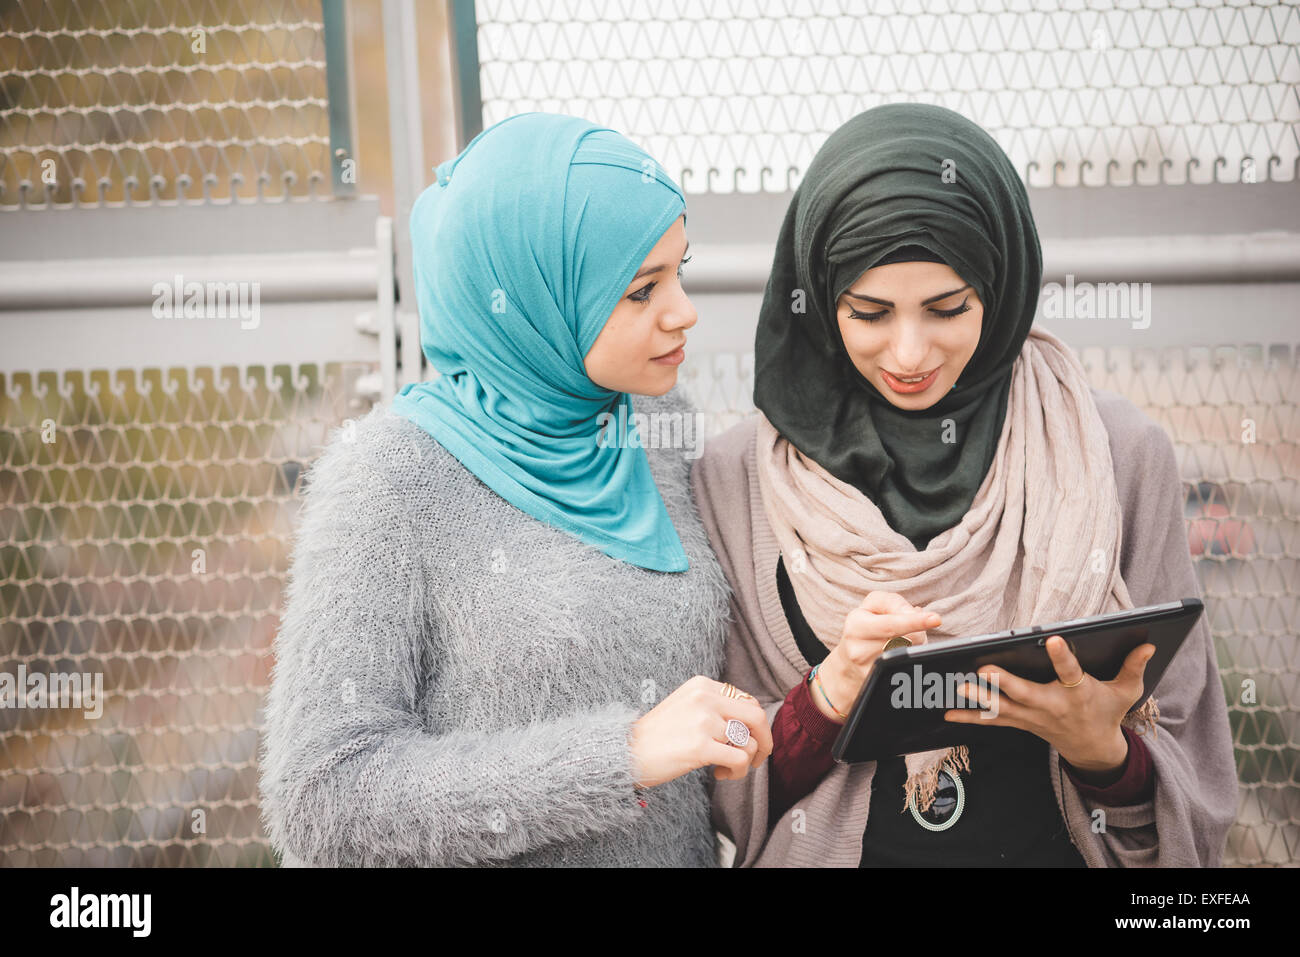 Two young women wearing hijabs using touchscreen on digital tablet on footbridge - Stock Image